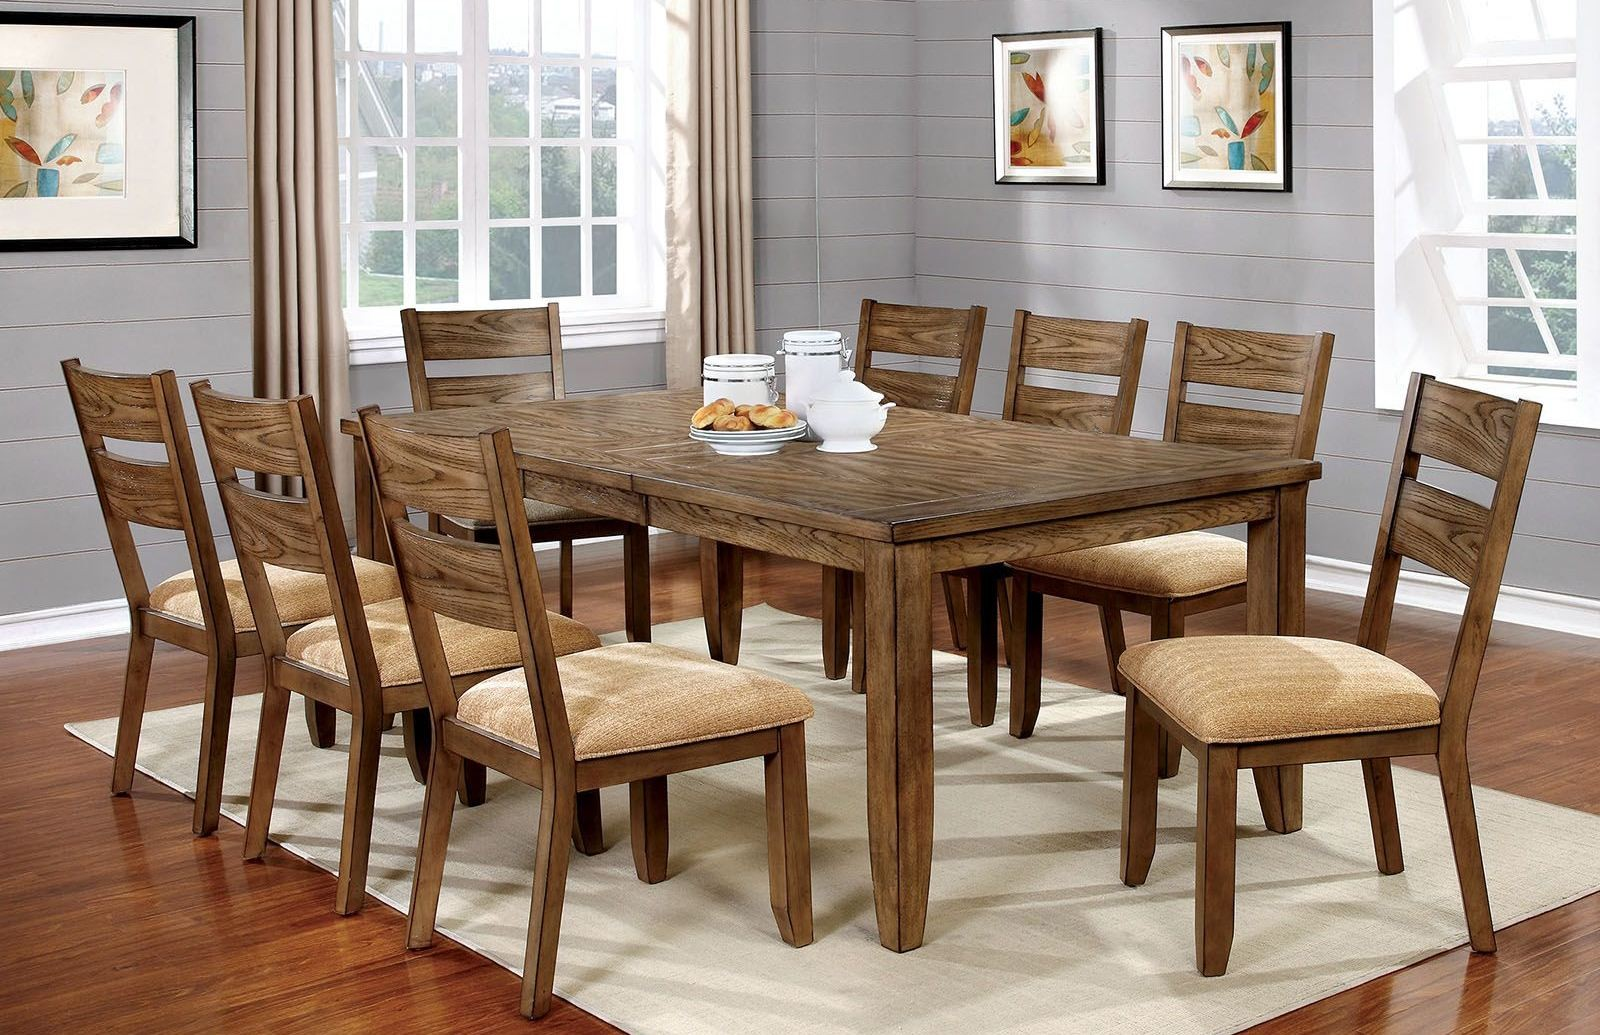 ava light oak dining room set cm3287t furniture of america. Black Bedroom Furniture Sets. Home Design Ideas